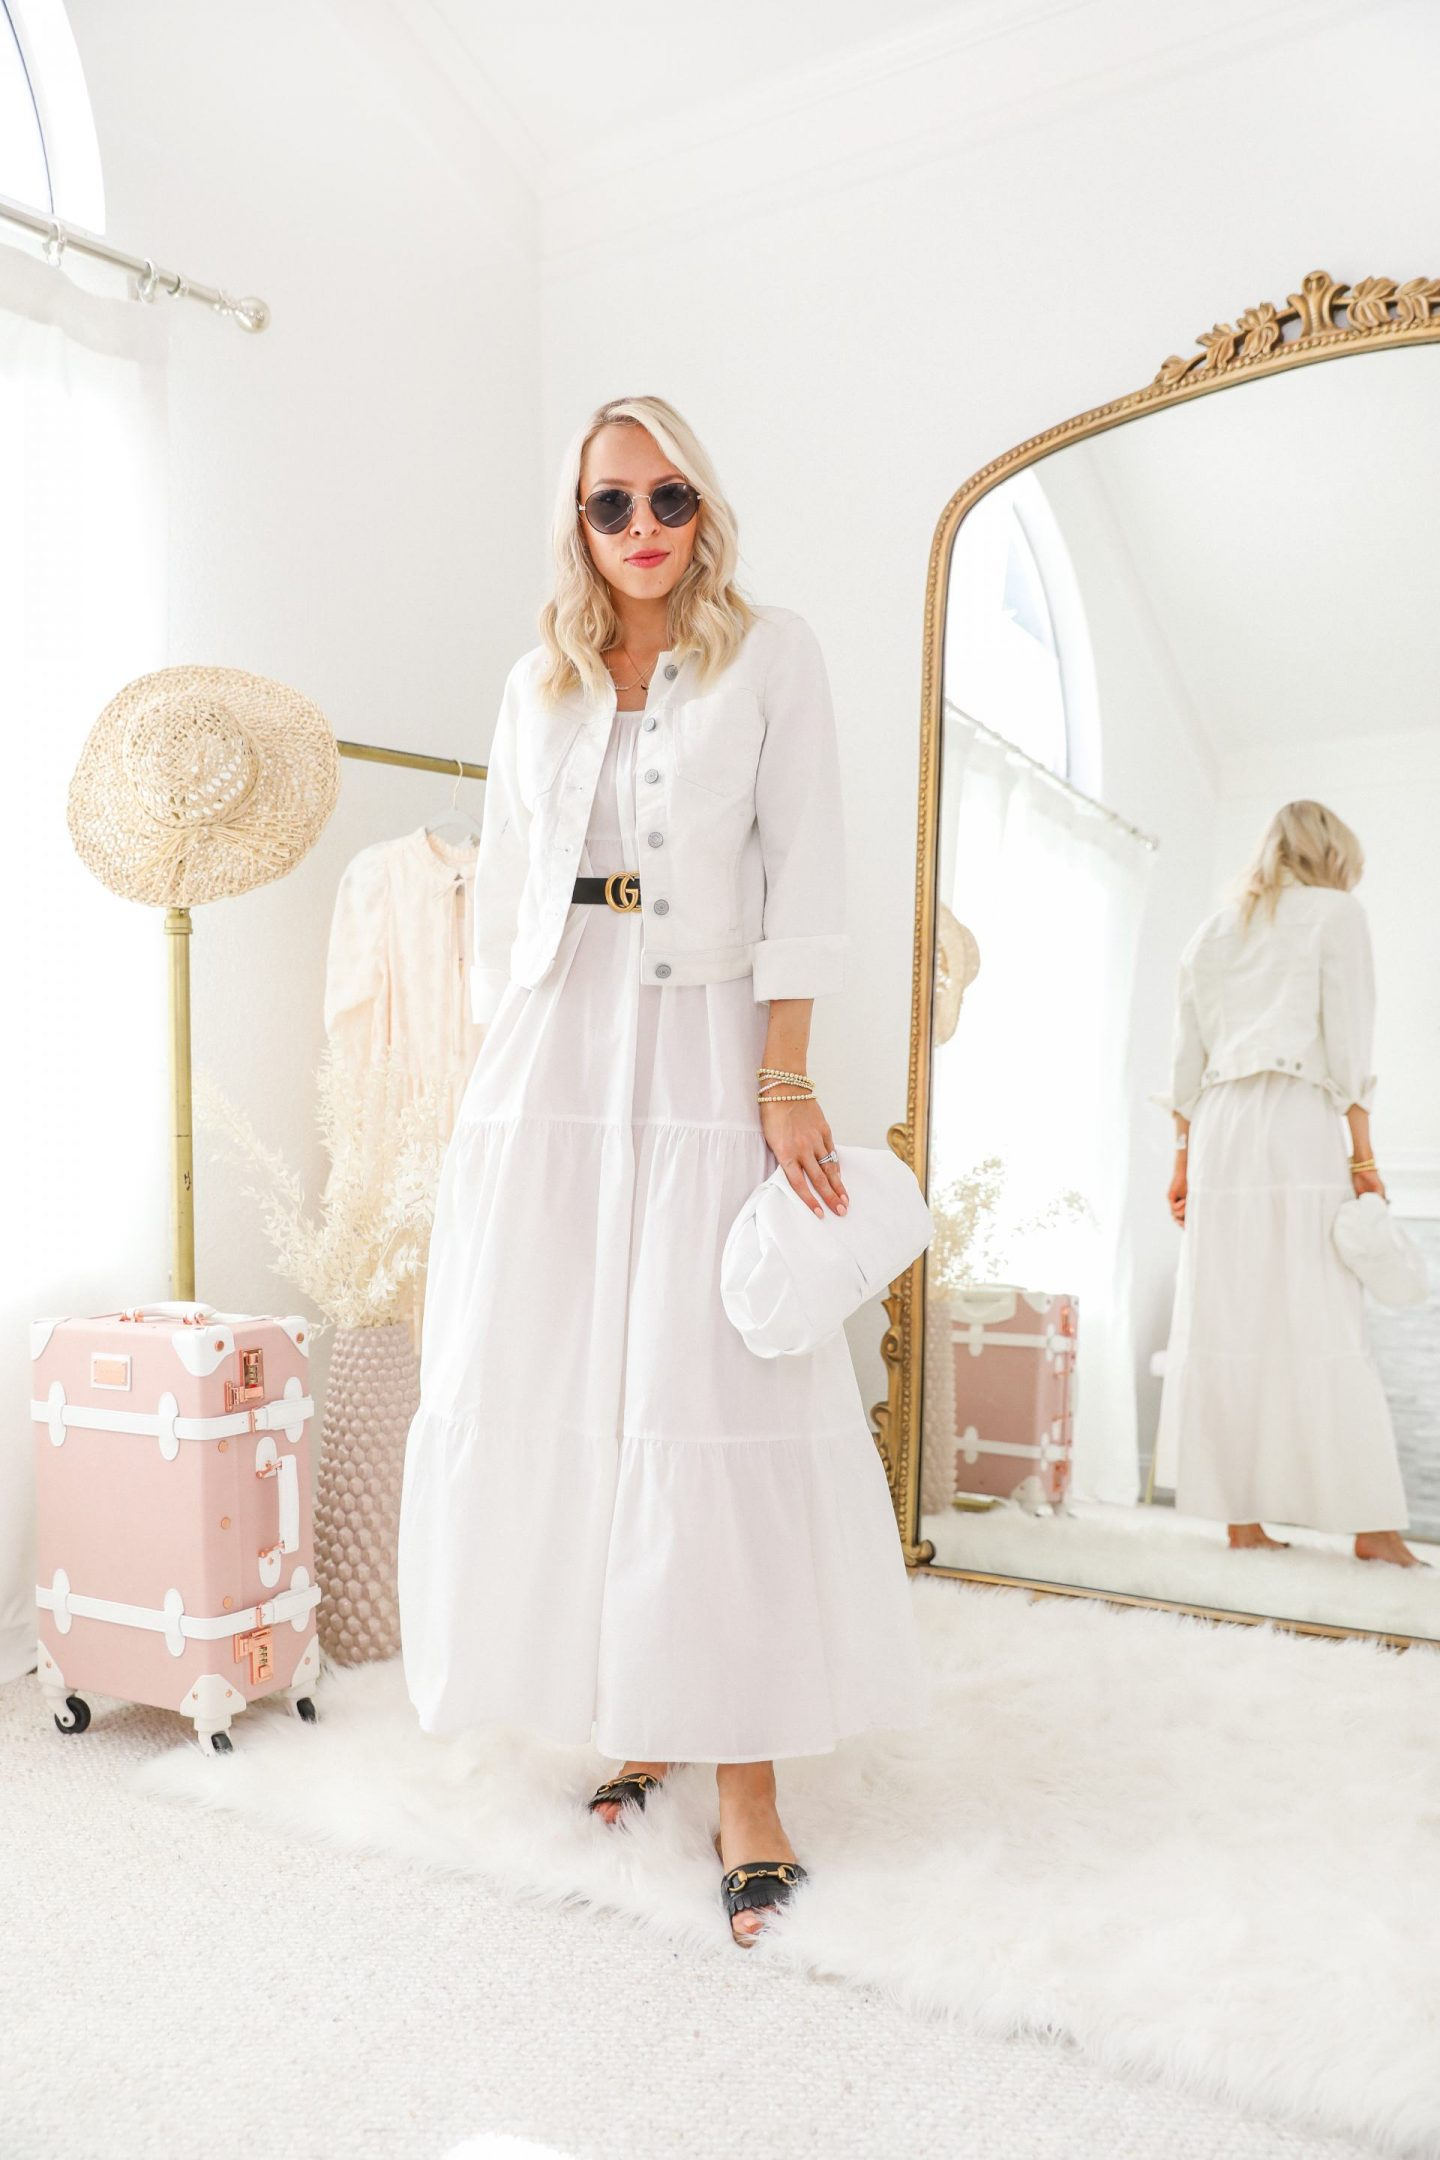 Five wats to style a little white maxi Target dress for Spring, featured by top San Francisco fashion blogger Lombard and Fifth.